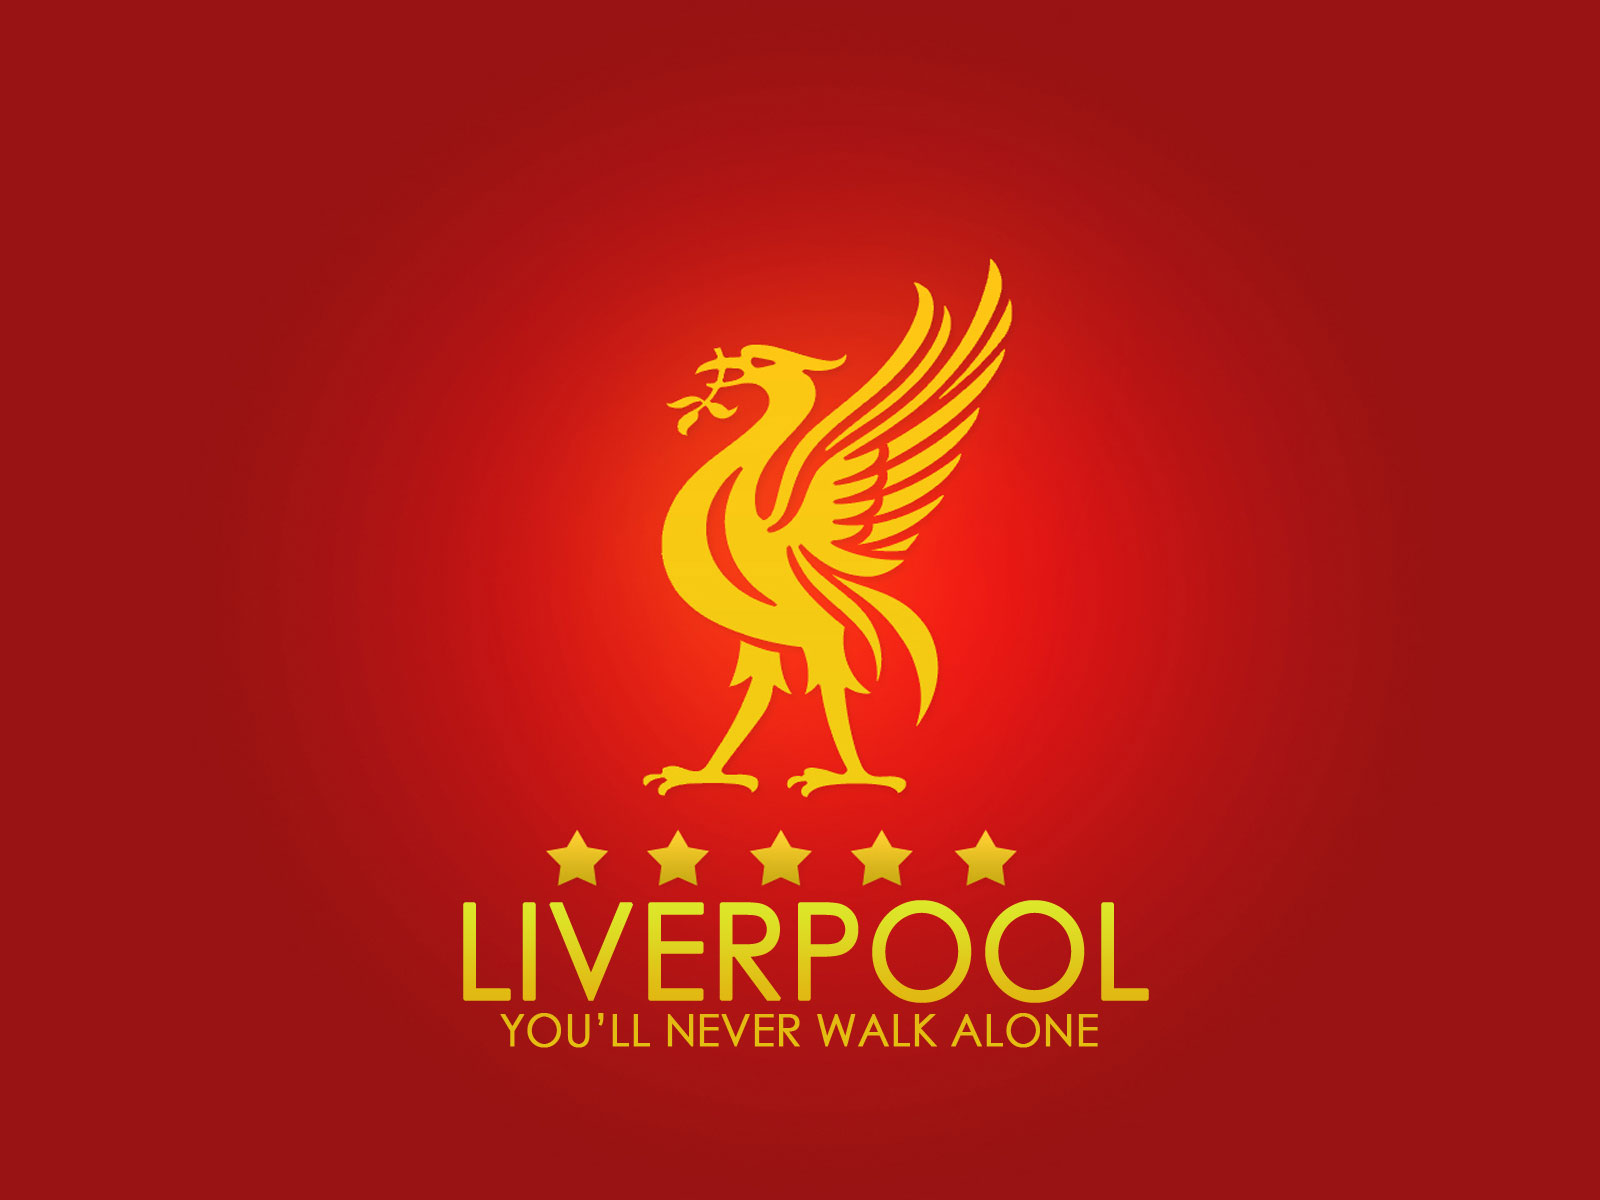 Wallpaper Liverpool FC 20 Gambar 1600x1200